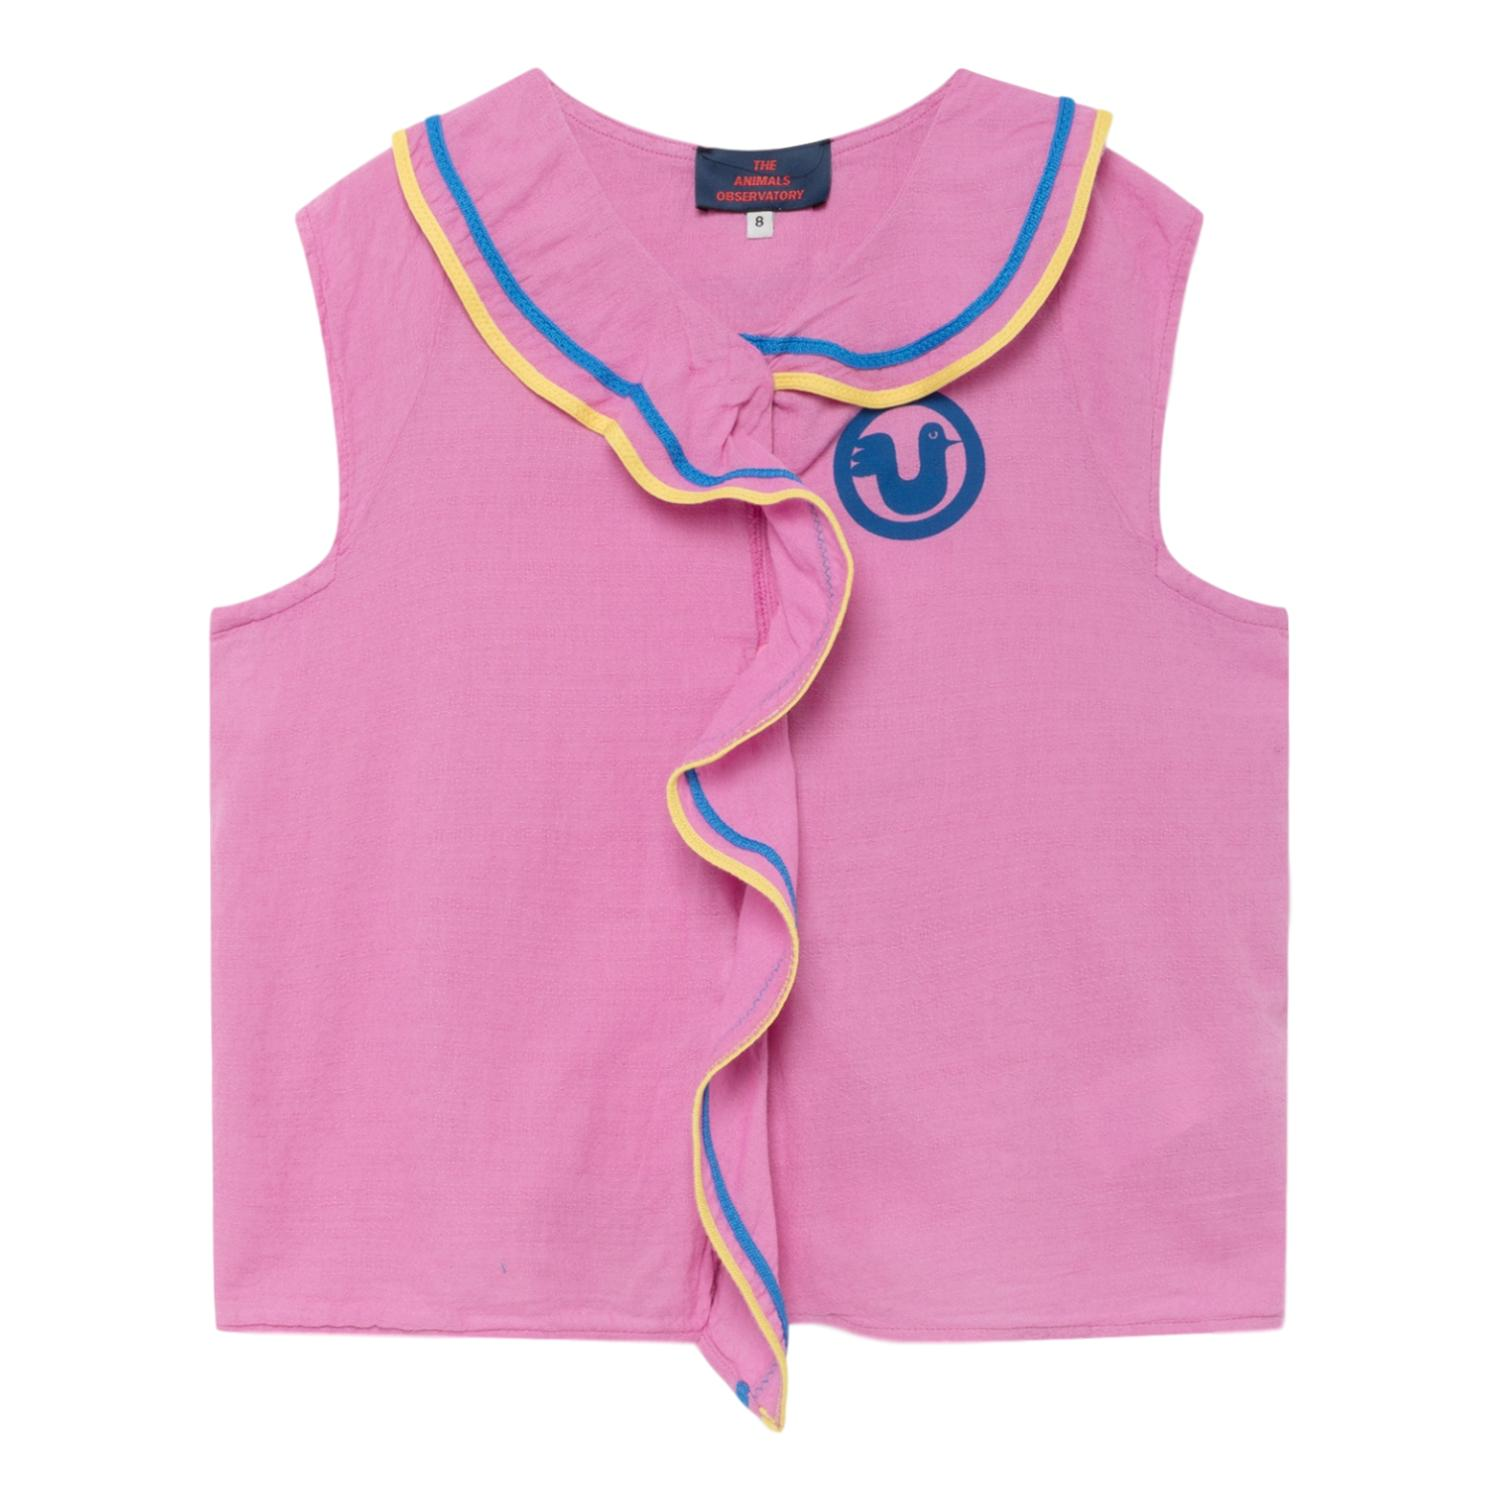 THE ANIMALS OBSERVATORY - Fuchsia Bird Kangaroo Kids Blouse